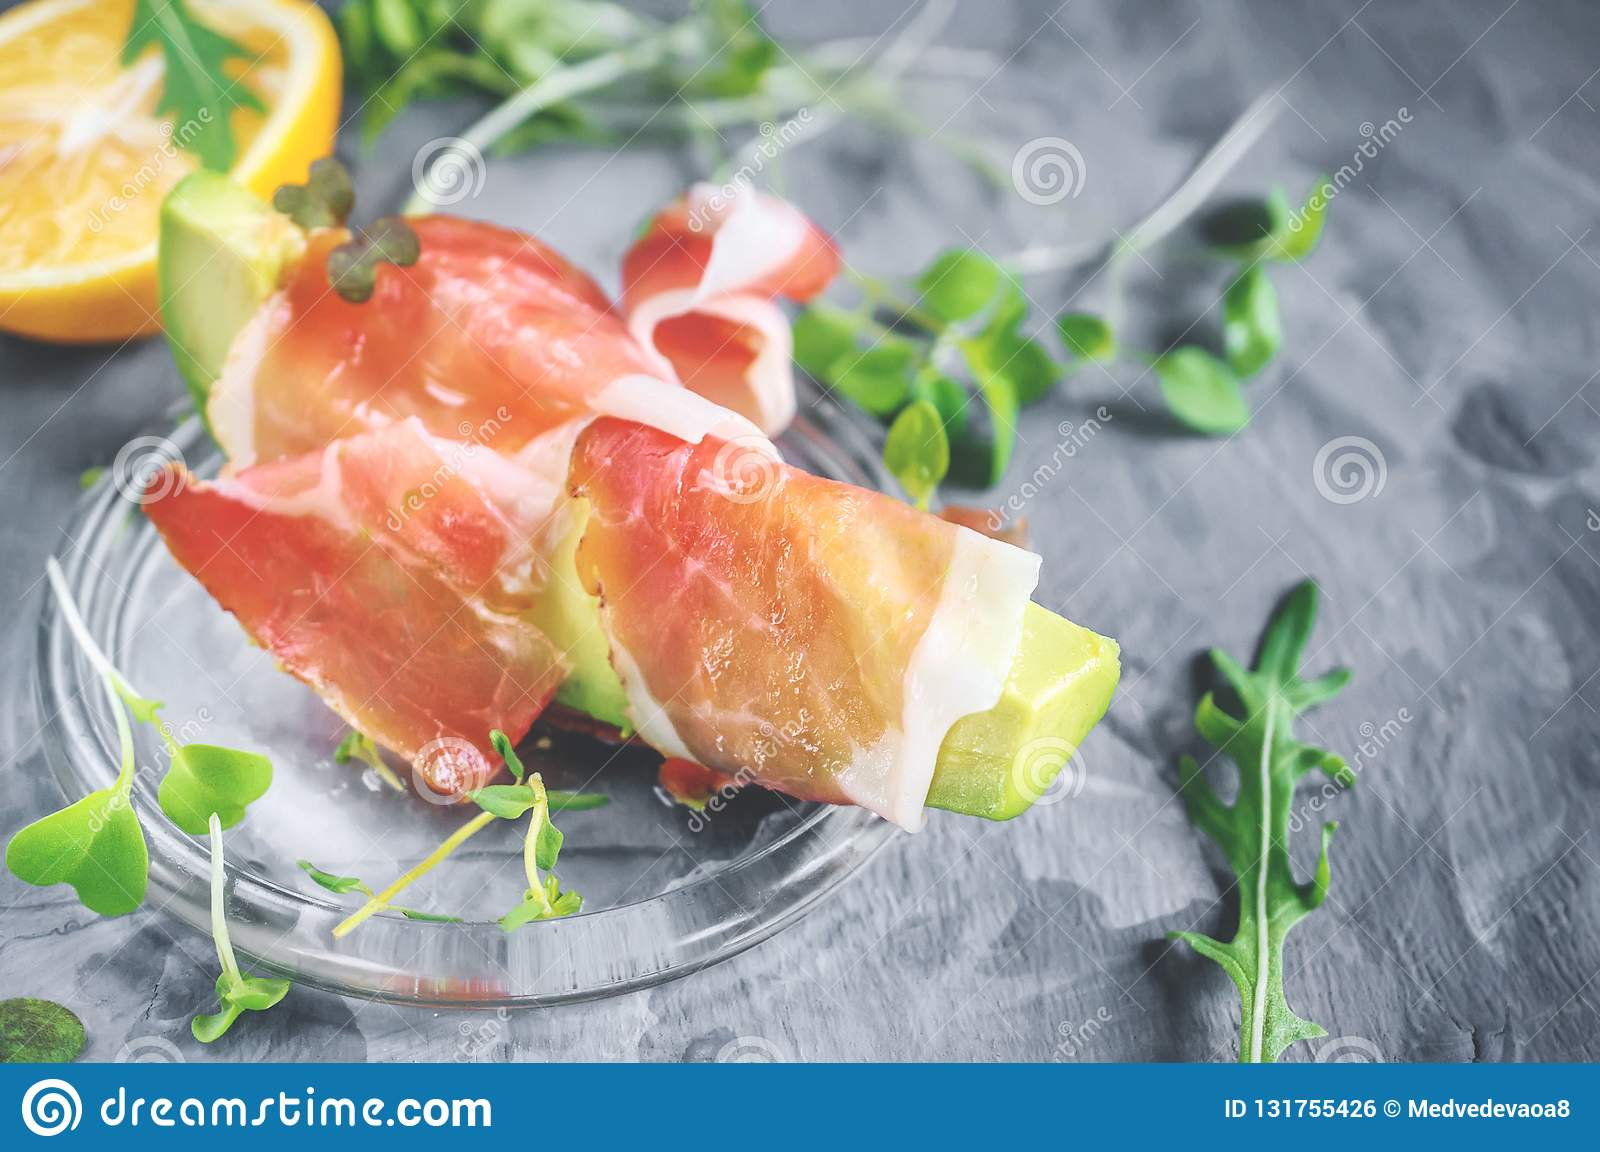 Avacado with bacon, traditional breakfast. Healthy food for weight normalization